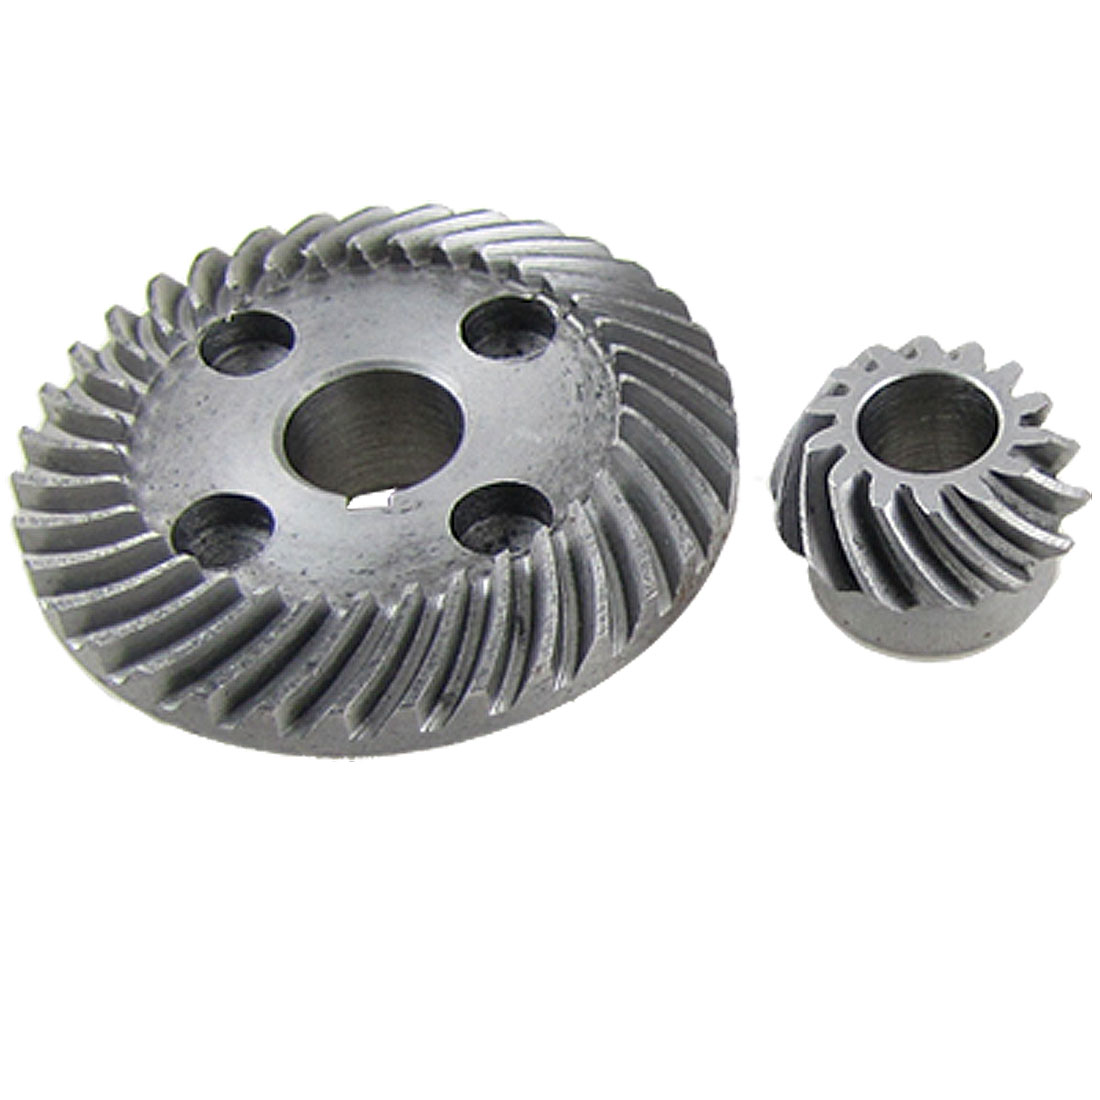 Power Tool Angle Grinder Spiral Bevel Gear Set for Hitachi F3